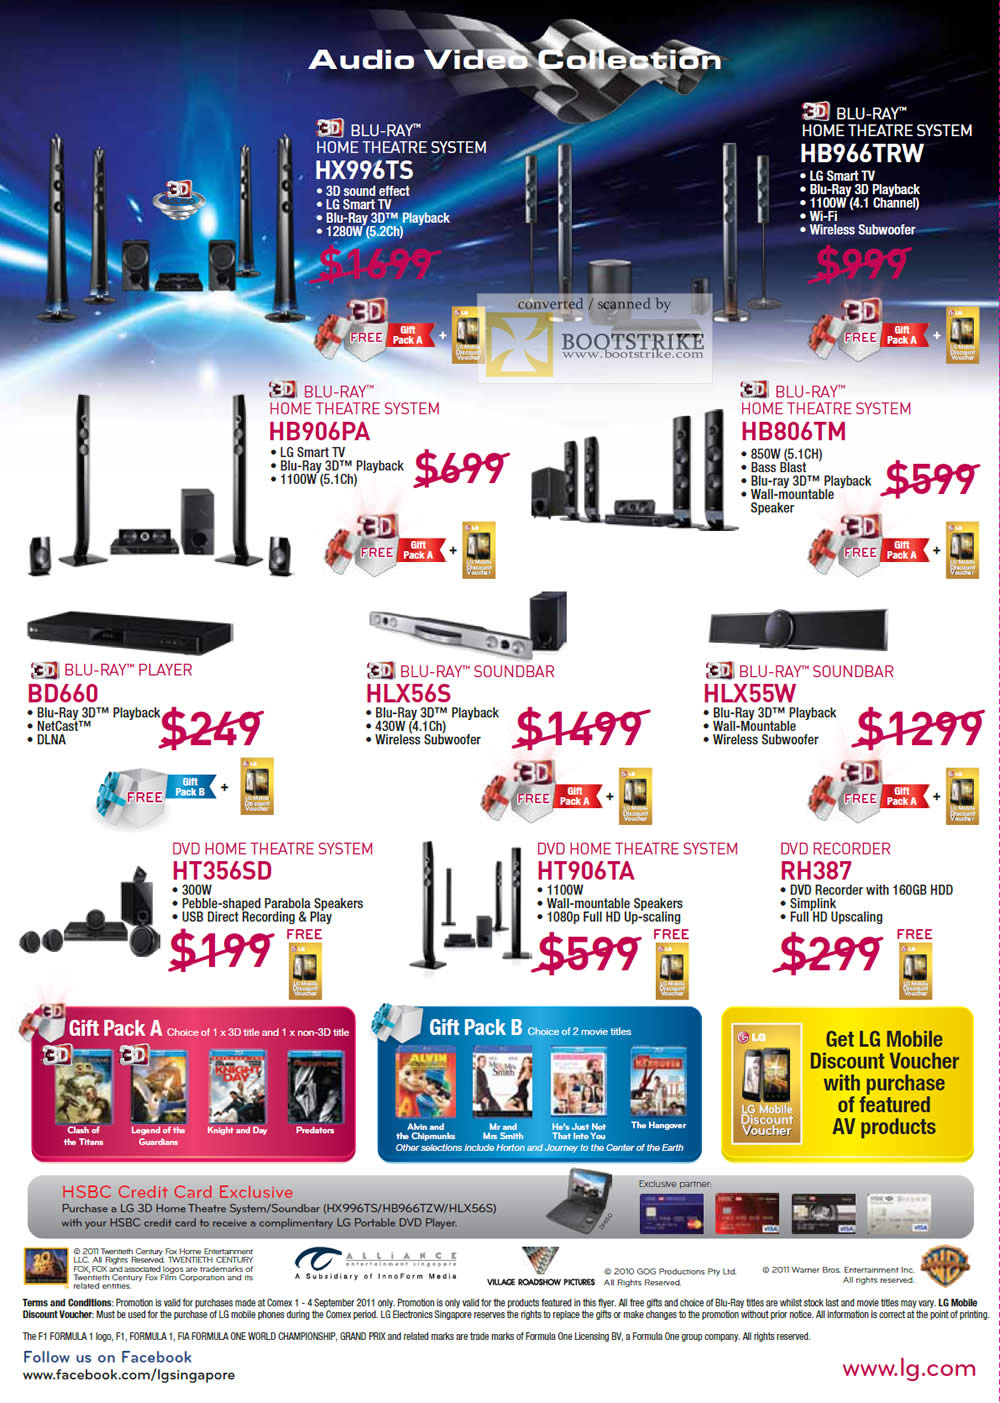 COMEX 2011 price list image brochure of LG Home Theatre System HX996TX HB977TRW HB906PA HB806TM BD660 HLX56S HLX55W HT356SD HT906TA RH387 DV Recorder Blu-Ray Player DVD